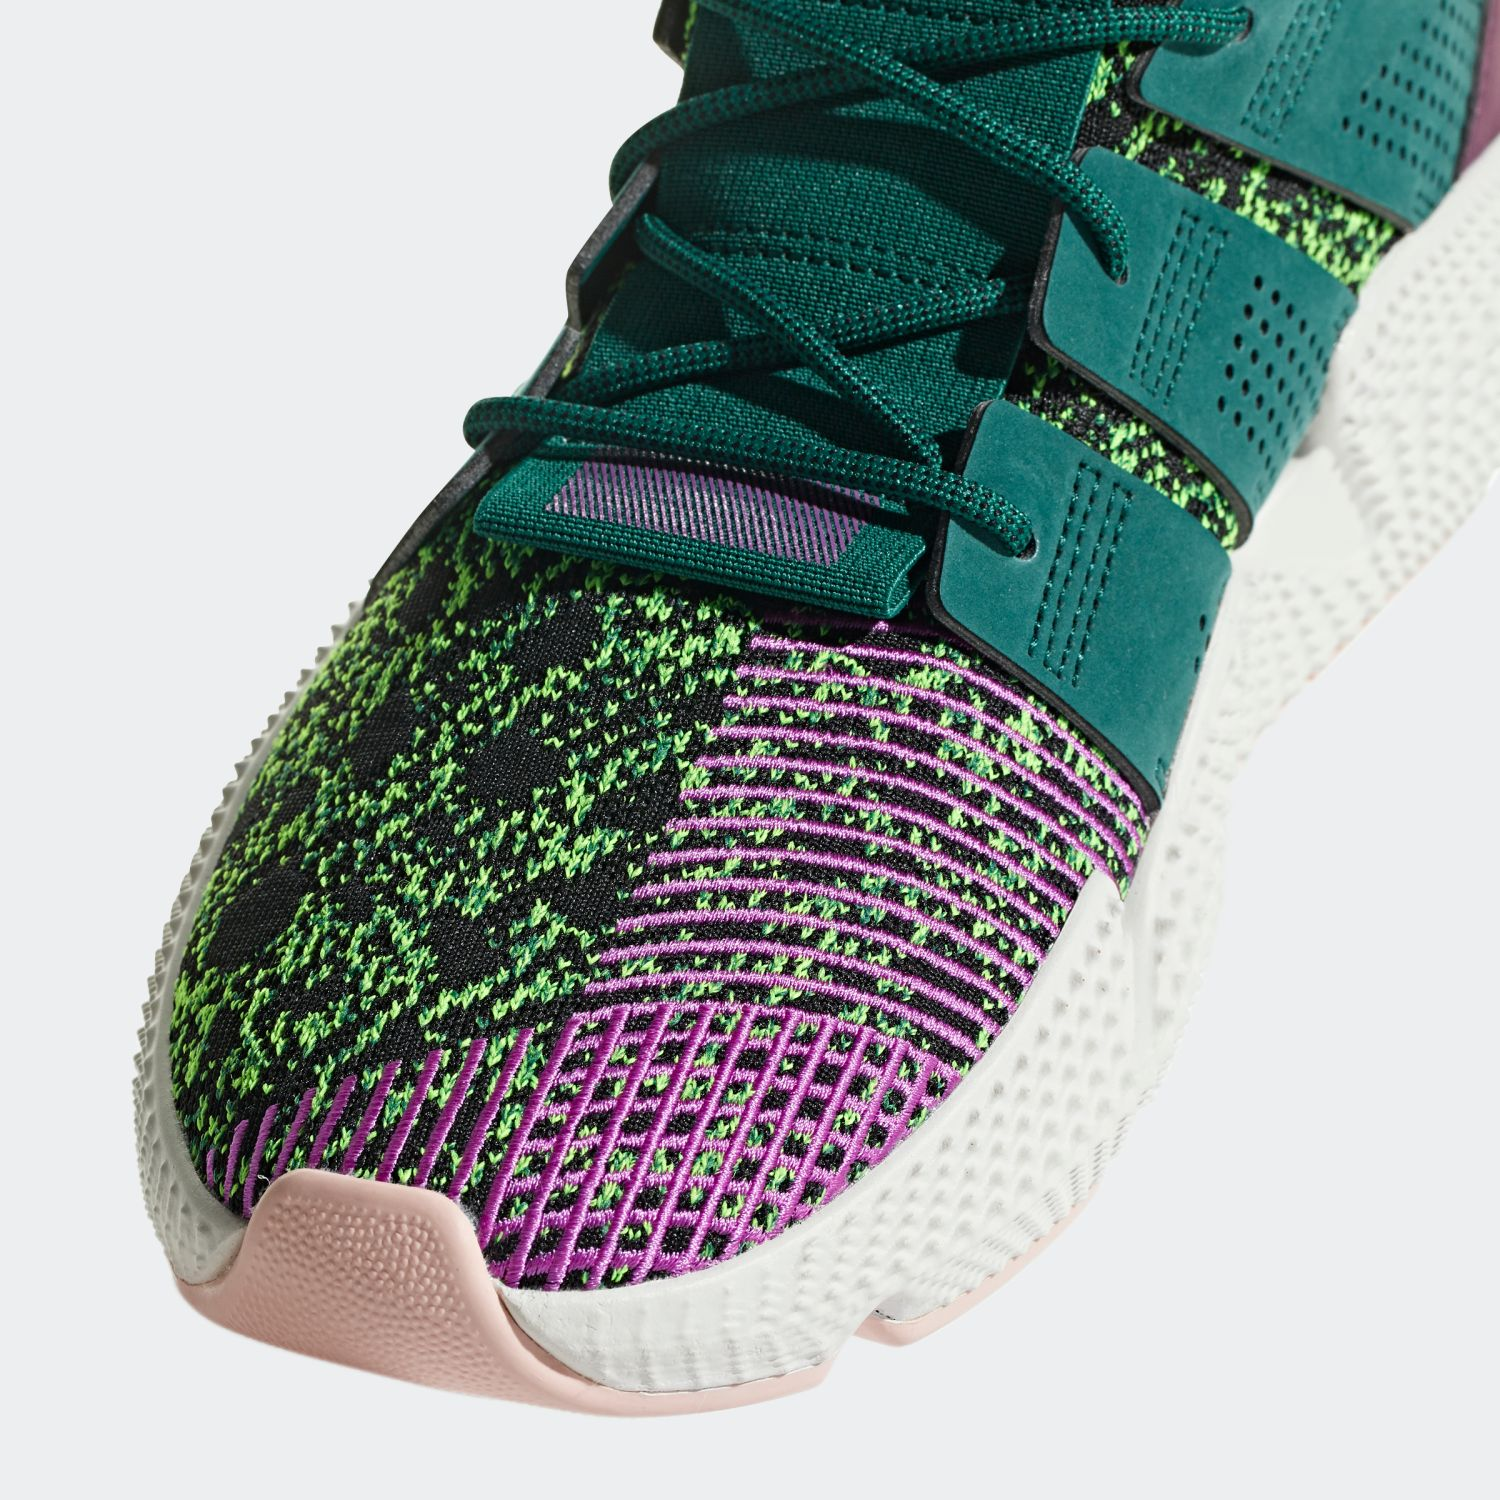 dragon-ball-z-adidas-deerupt-runner-son-gohan-d97052-release-20181027